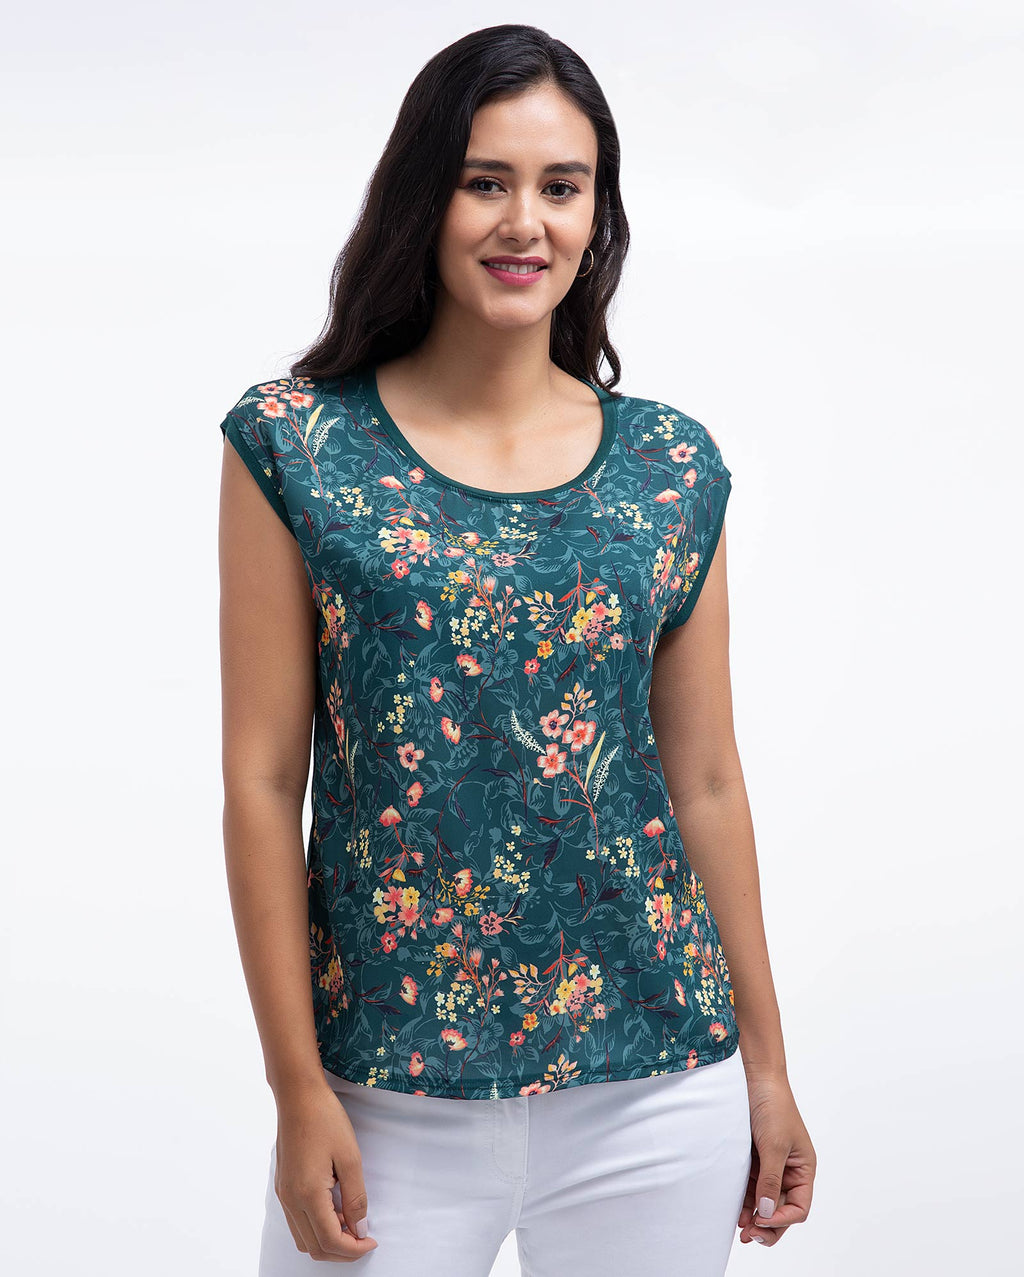 Polo Sin Mangas Mujer Verde